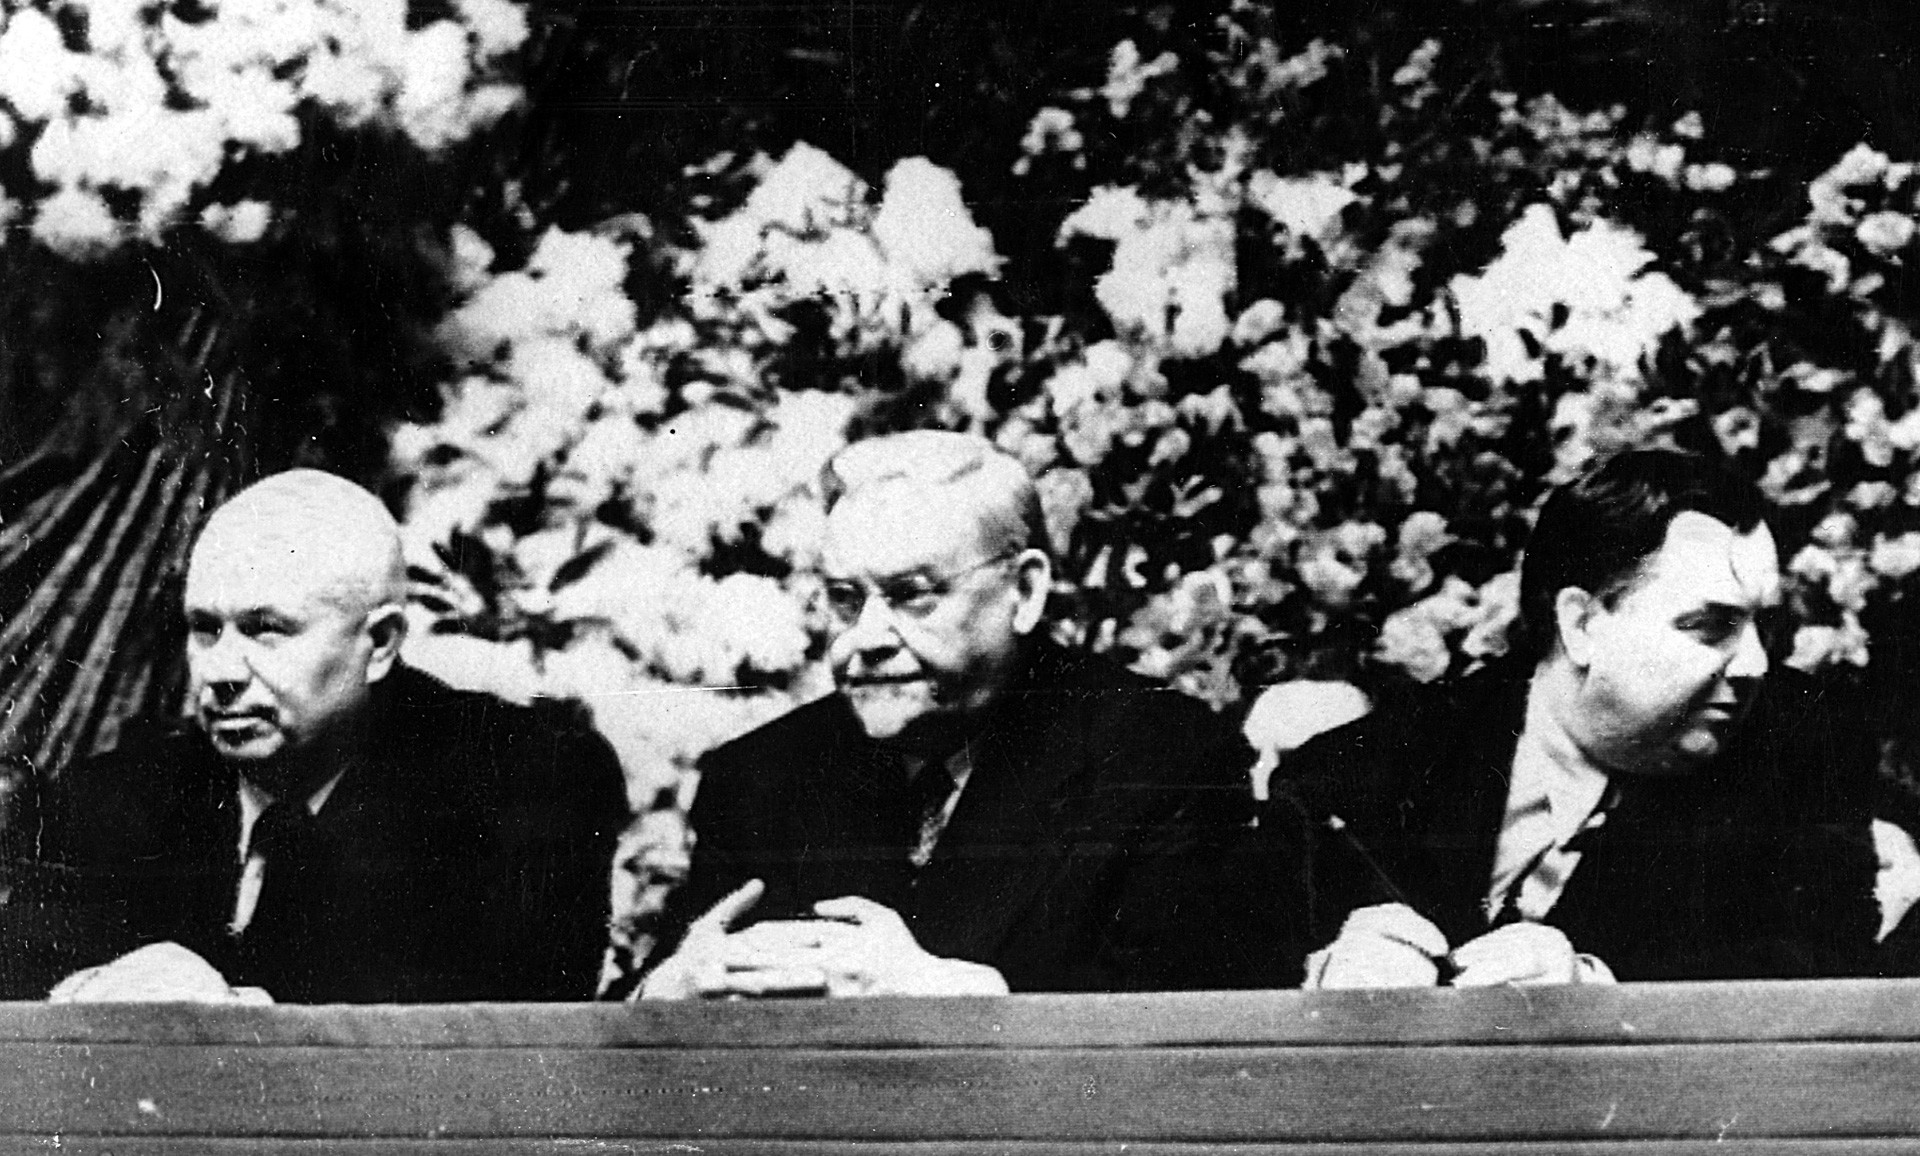 Soviet politicians Nikita Khrushchev, Nikolai Bulganin and Georgy Malenkov